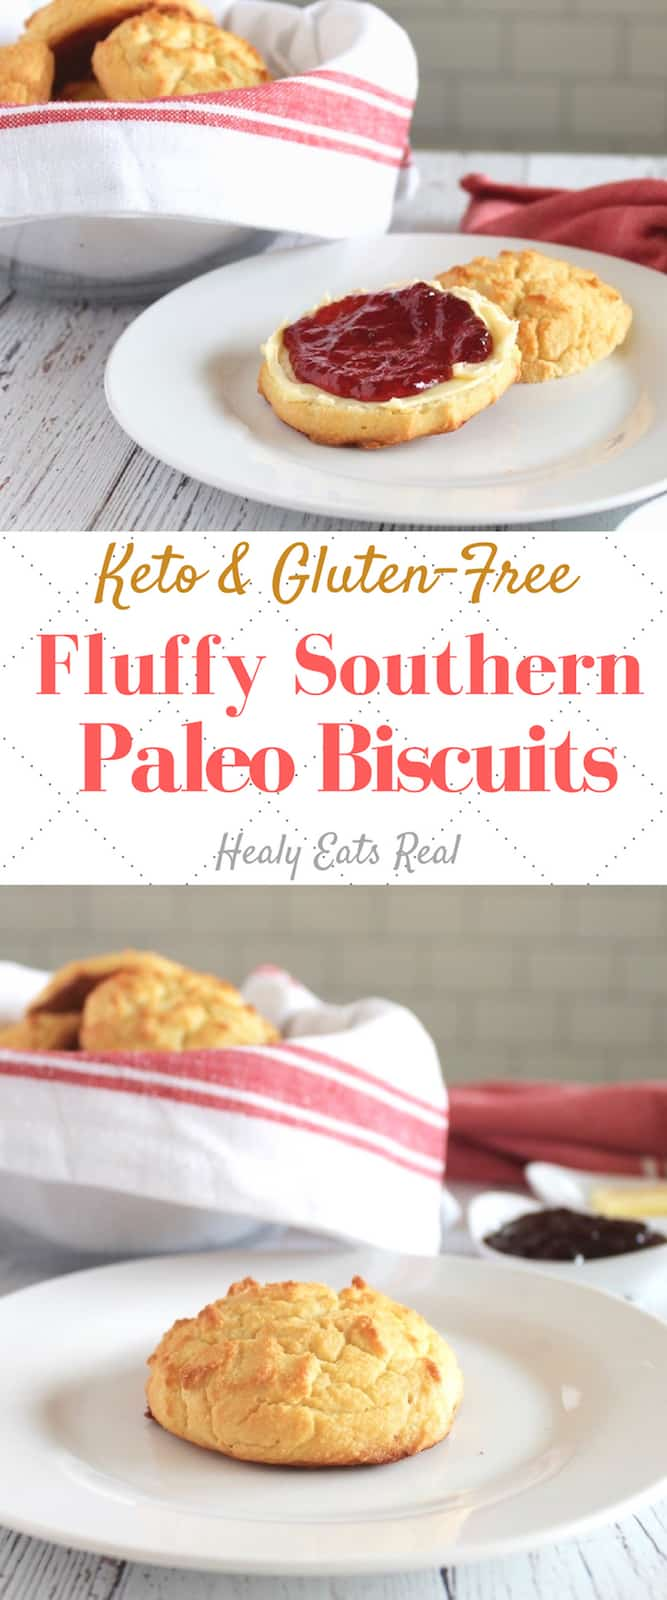 Southern Style Fluffy Paleo Biscuits (Keto & Low Carb)